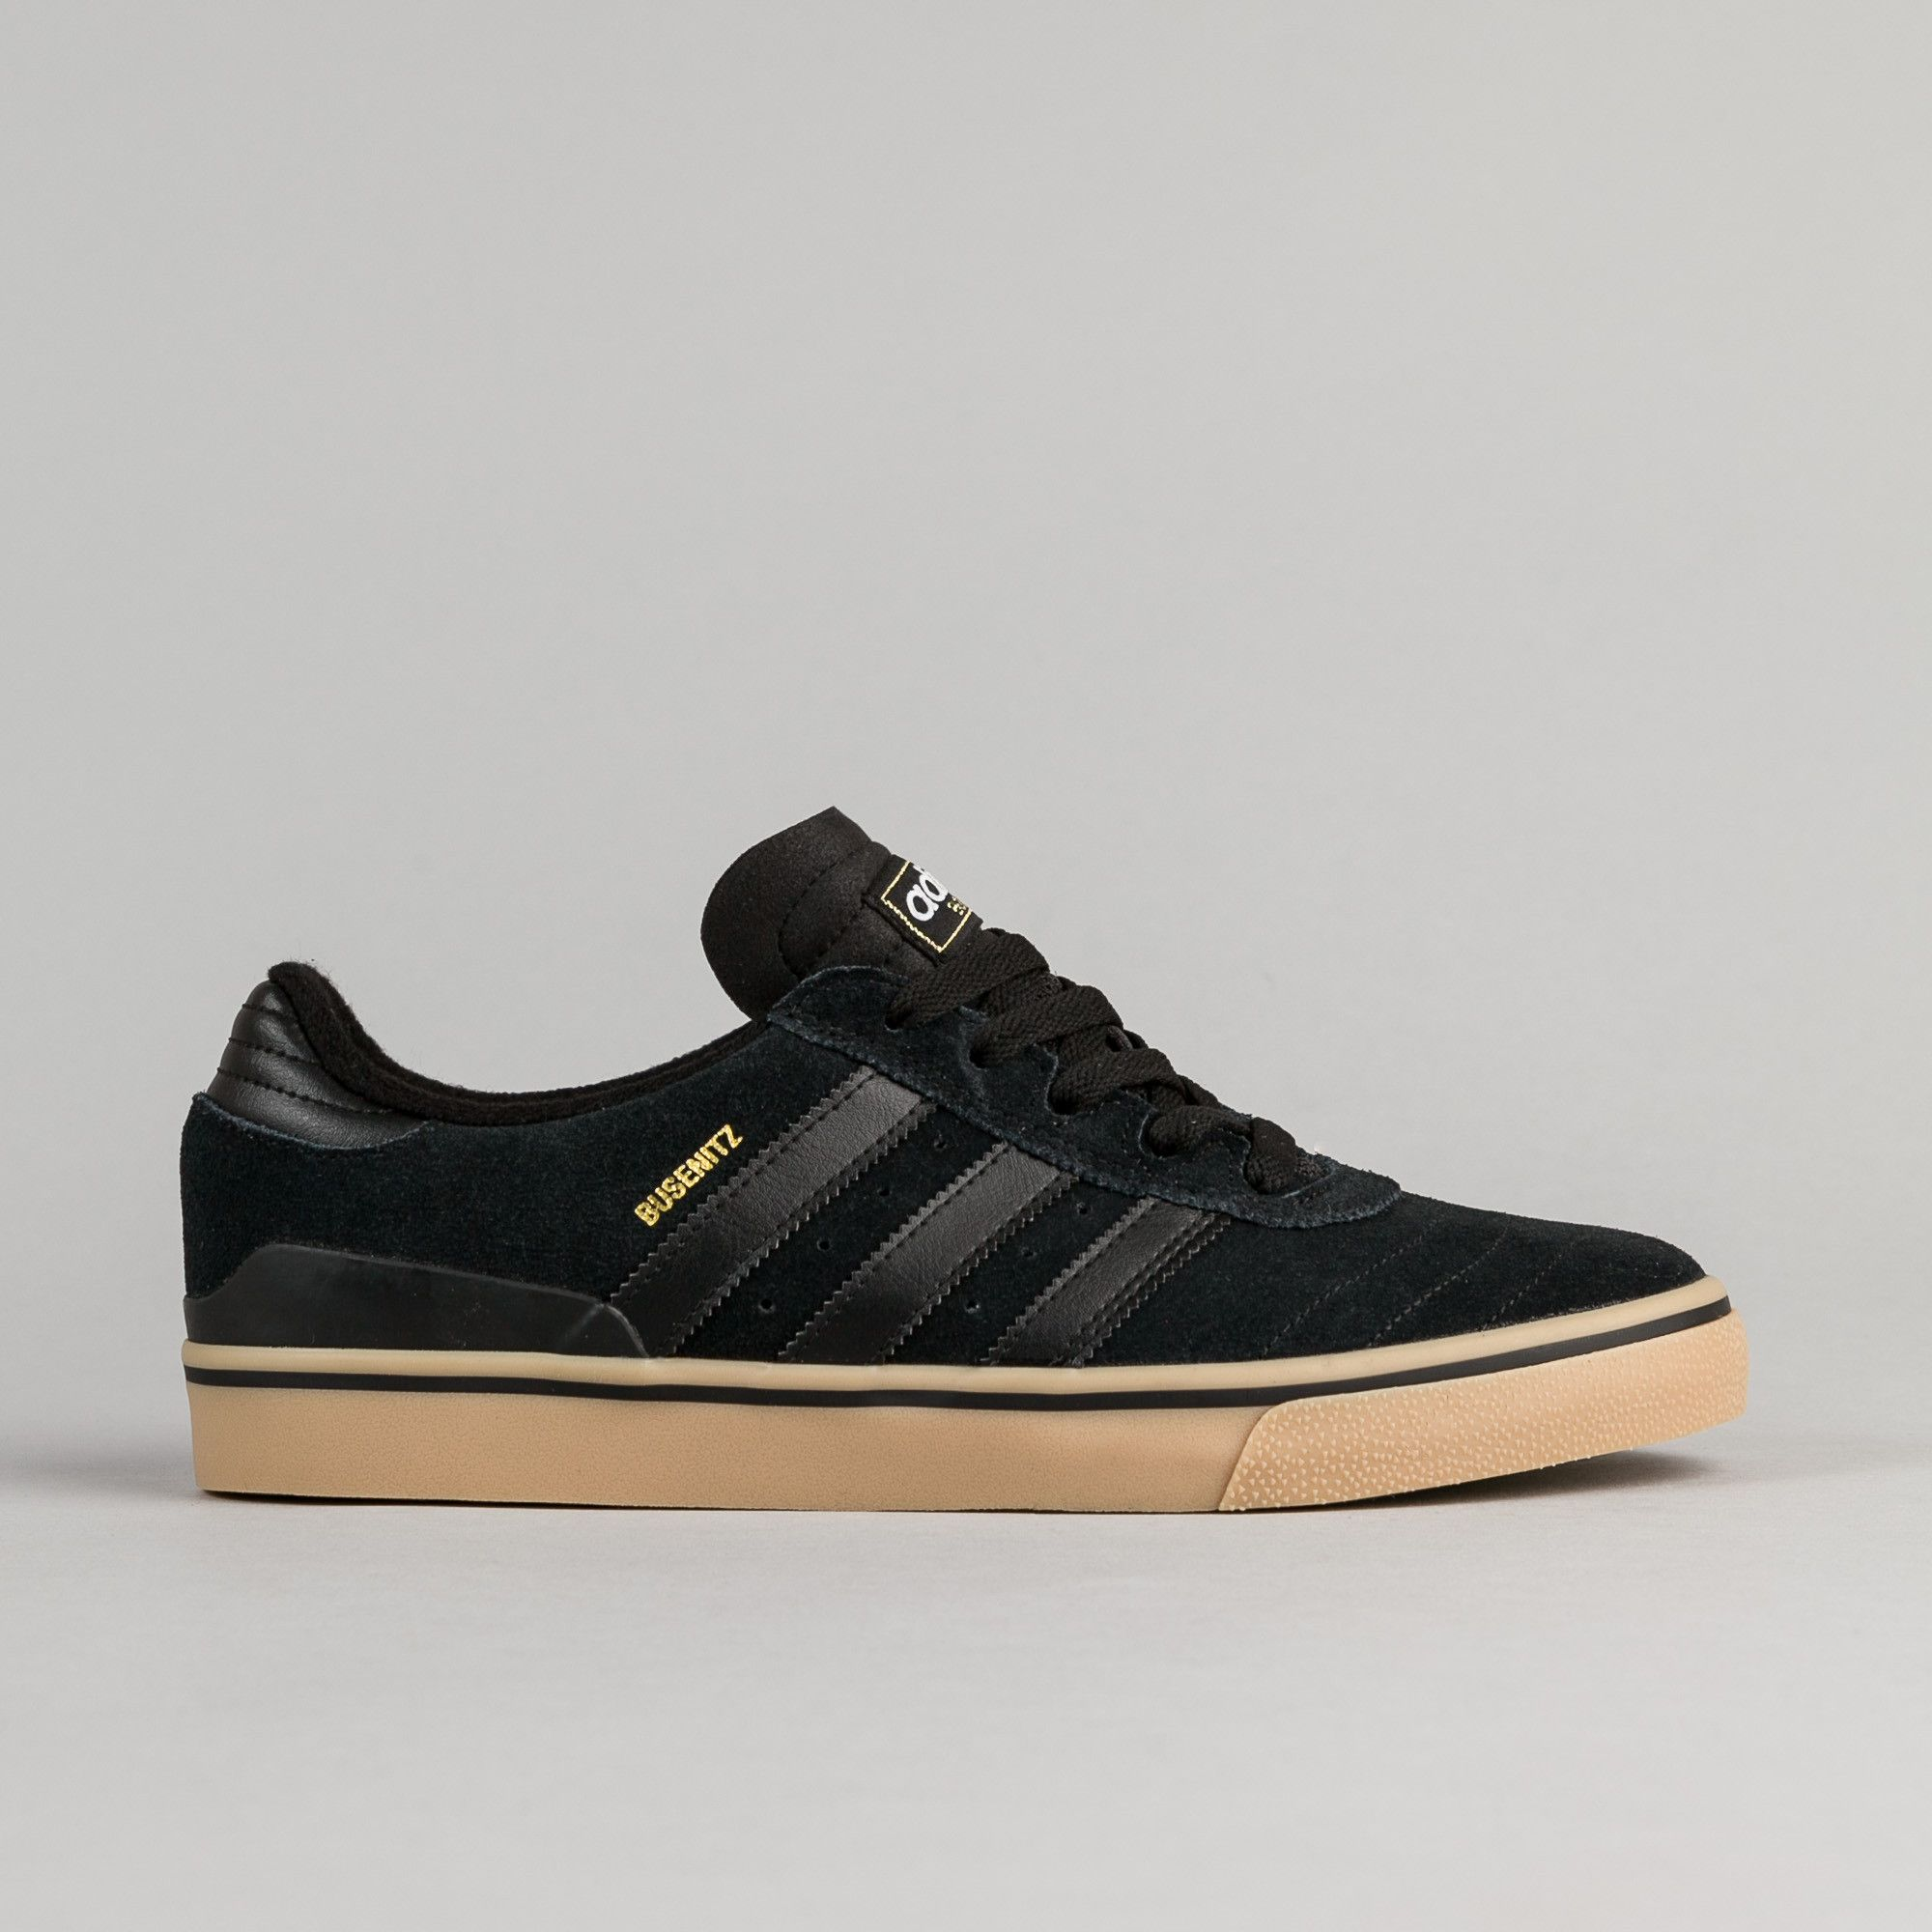 new style ac927 d180f Free Shipping  Free Returns  Shop the Adidas Busenitz Vulc ADV Shoes in  Core Black and Core Black  Gum at Flatspot, premium skateboard store since  1995.